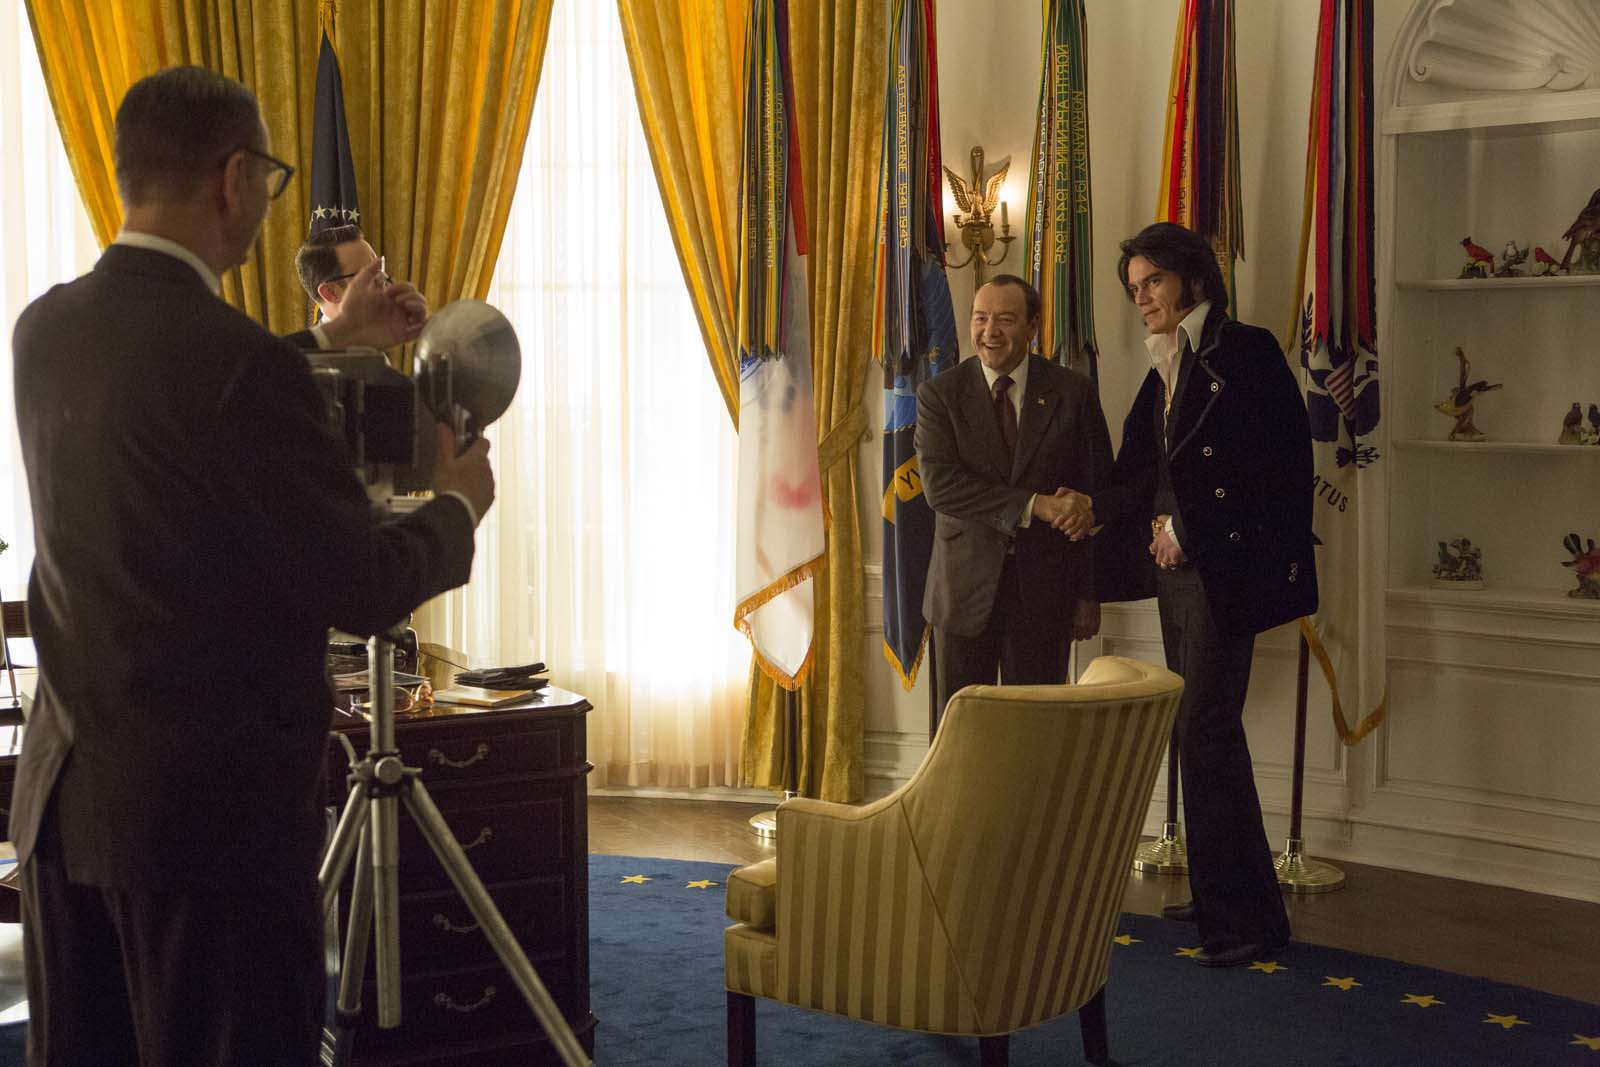 Elvis & Nixon - Kevin Spacey & Michael Shannon